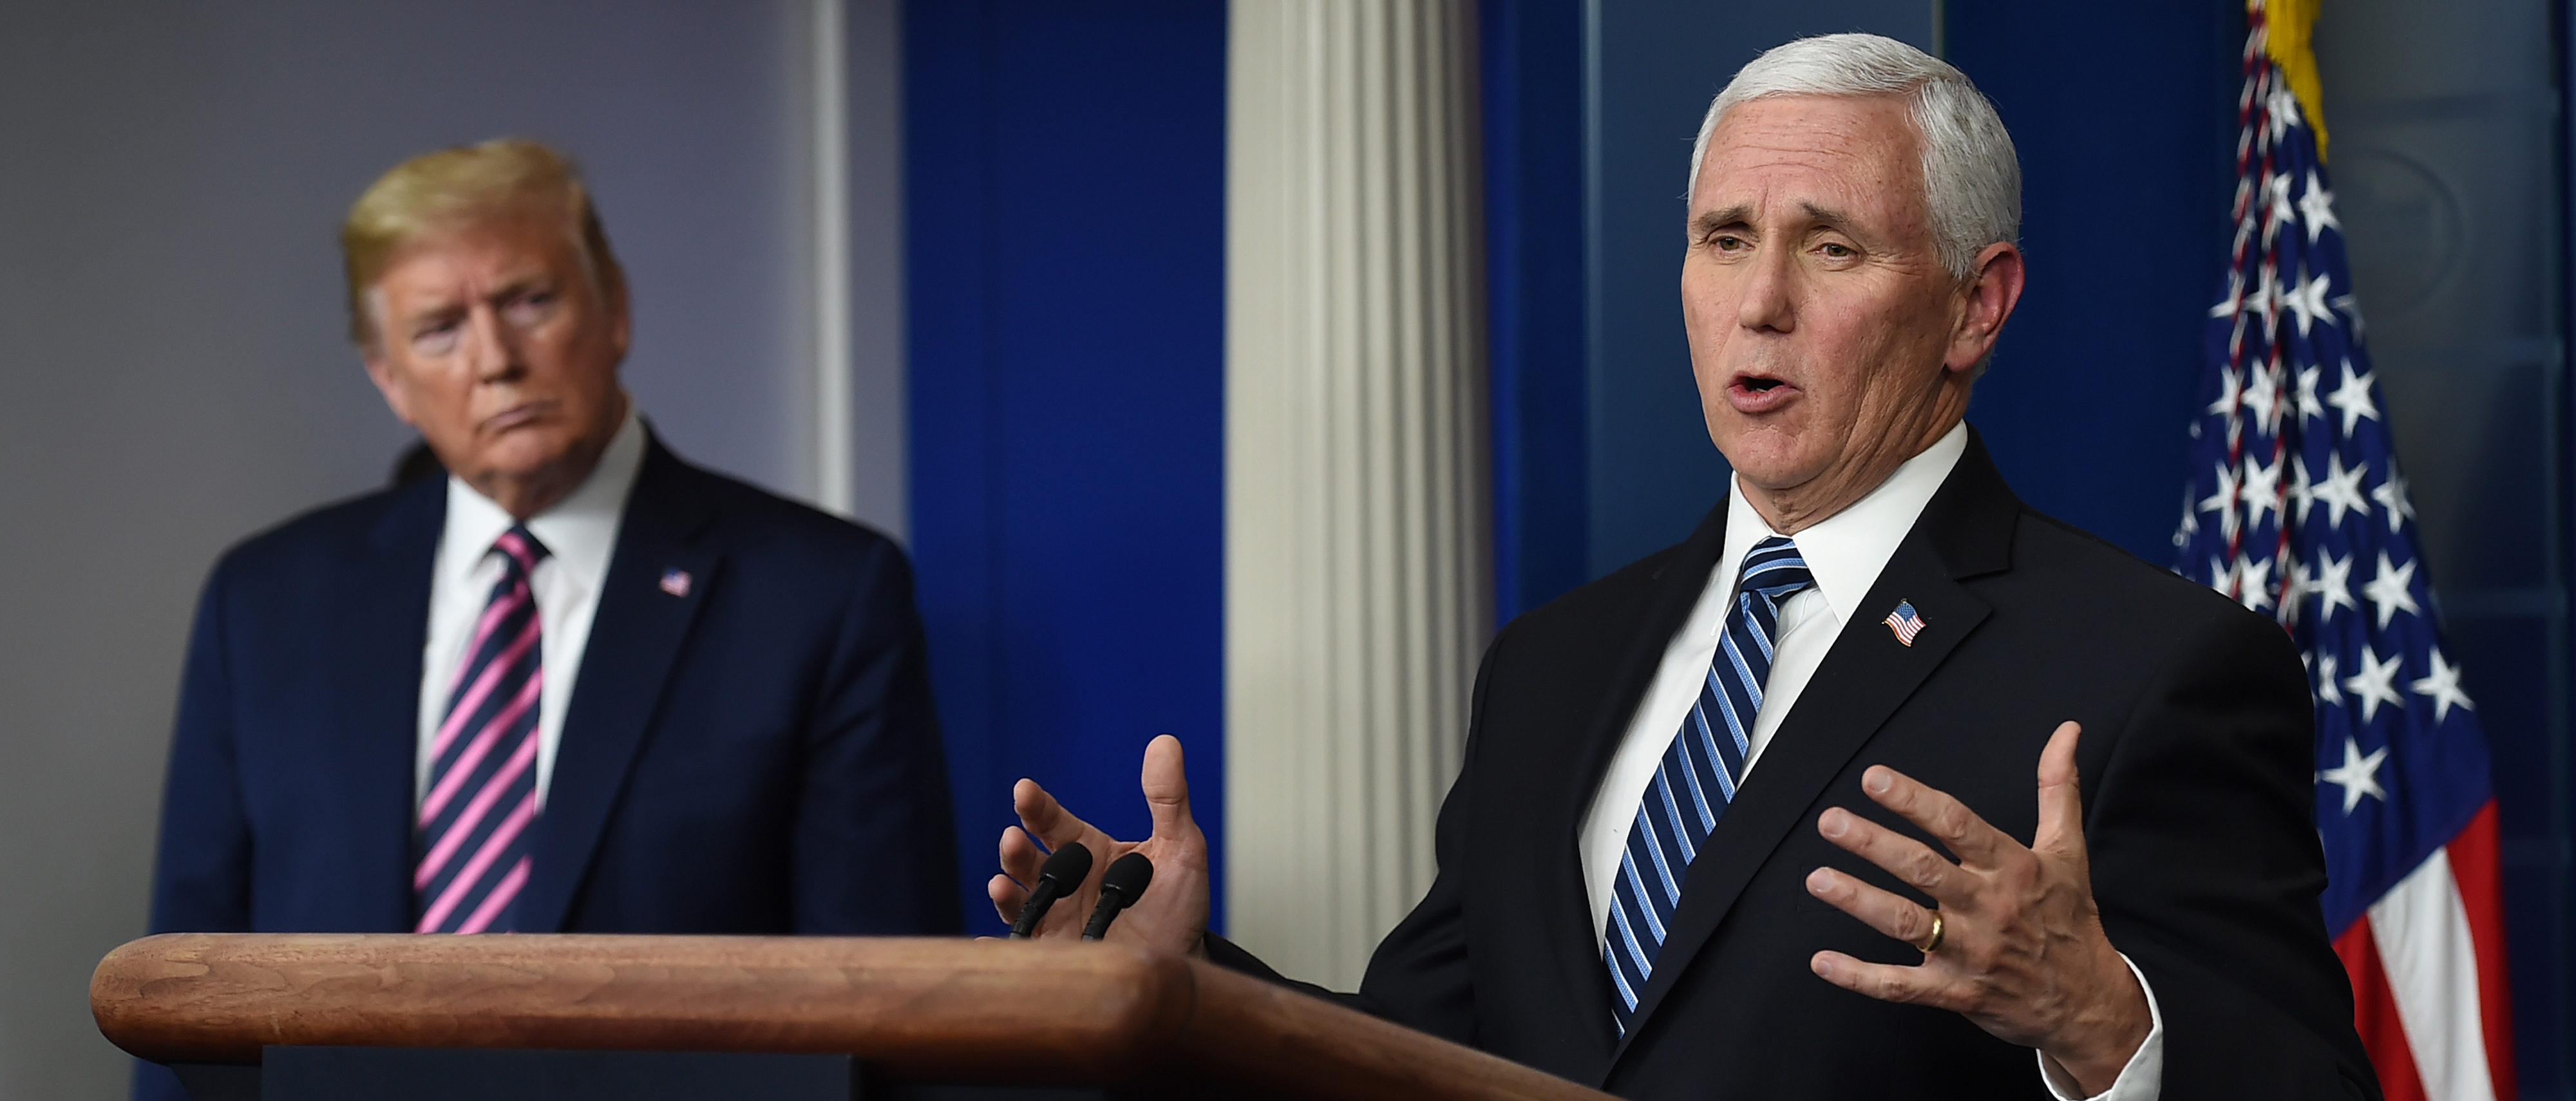 US President Donald Trump listens as US Vice President Mike Pence speaks during the daily briefing on the novel coronavirus, which causes COVID-19, in the Brady Briefing Room of the White House on April 24, 2020, in Washington, DC (Photo by OLIVIER DOULIERY/AFP via Getty Images)